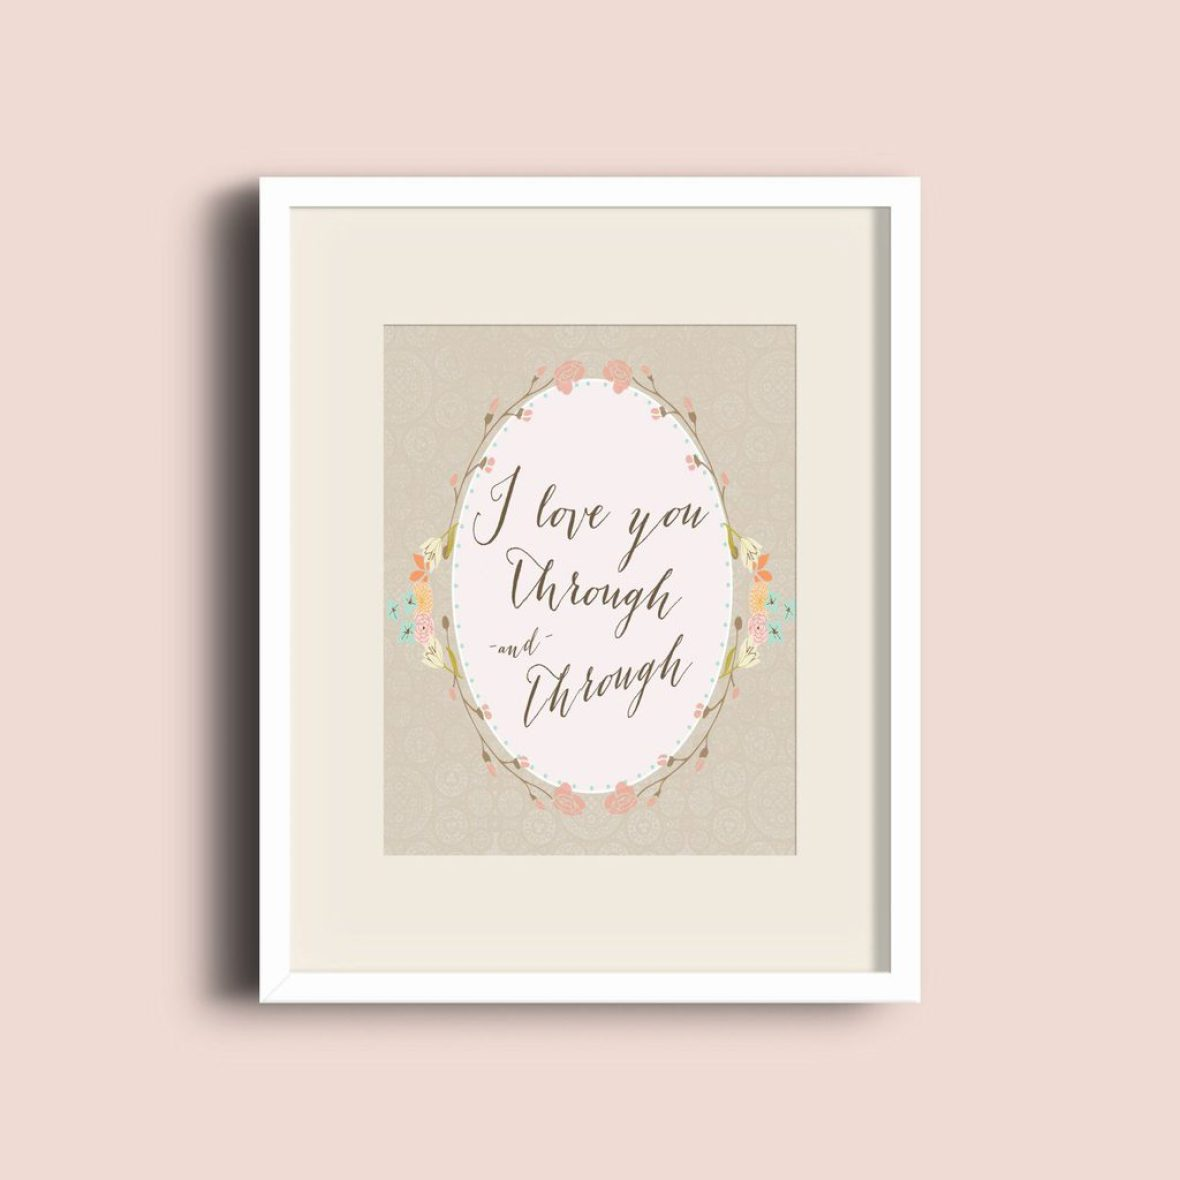 I love You Through and Through Free Printable Artwork Download | Five Marigolds